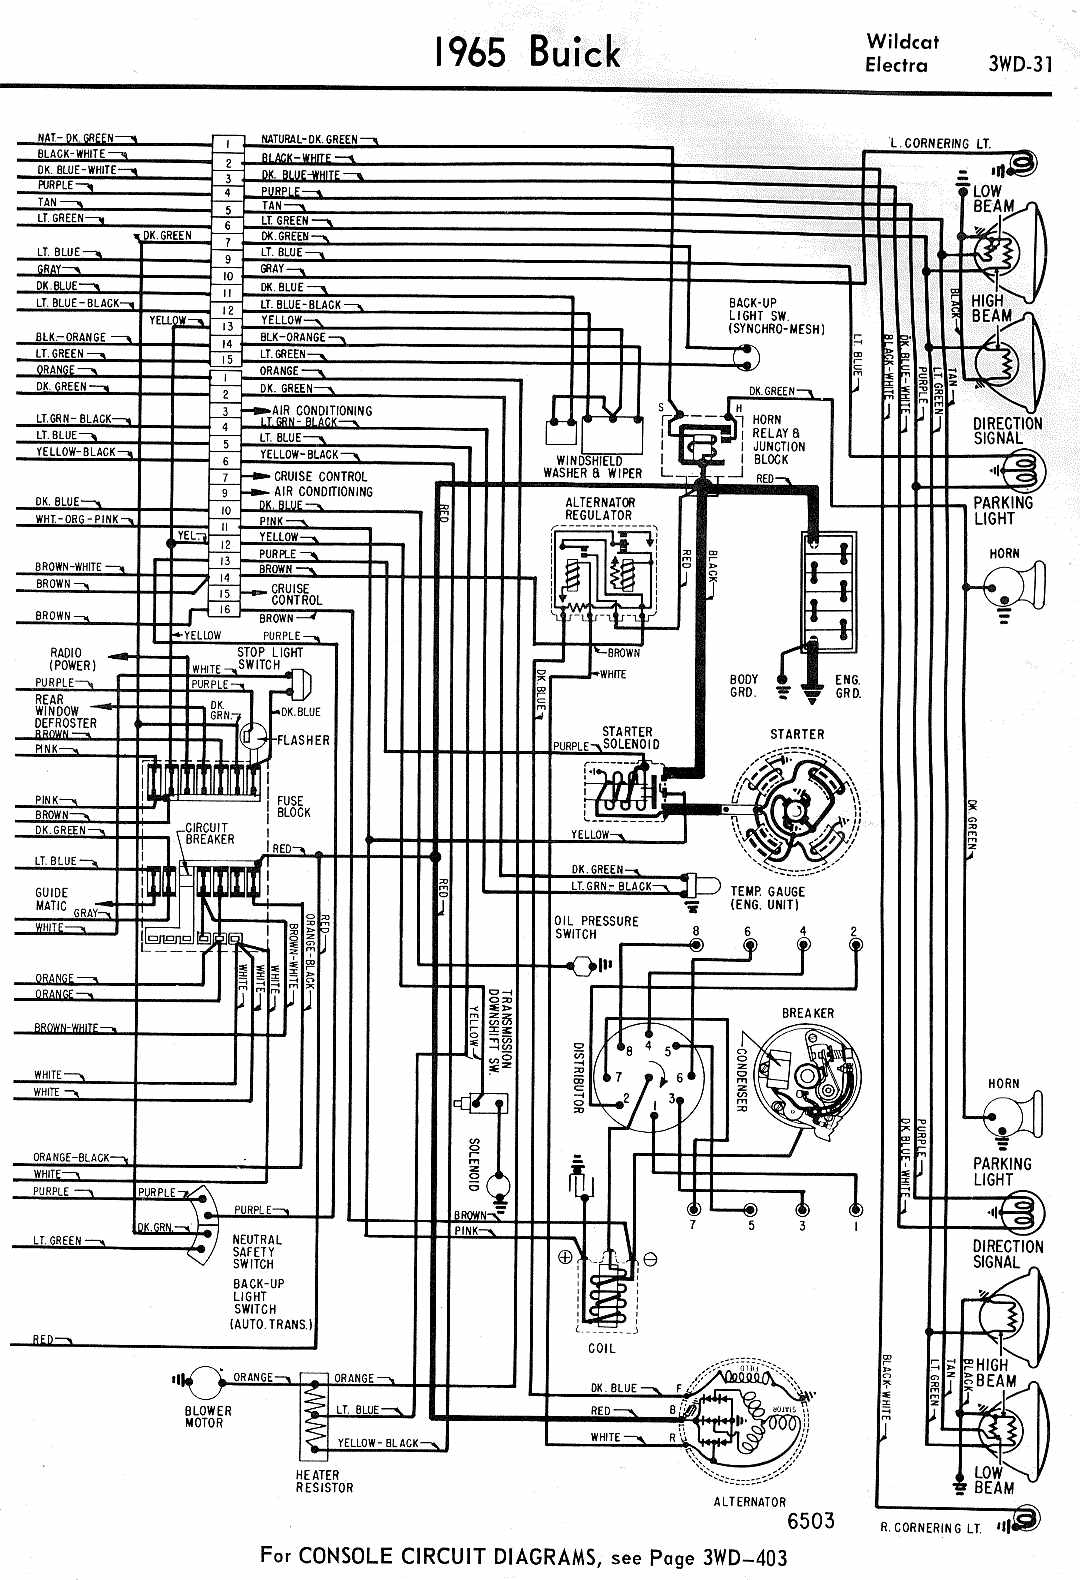 hight resolution of wiring diagrams of 1965 buick riviera part 1 wiring diagram data val wiring diagram for 1963 buick special and skylark part 2